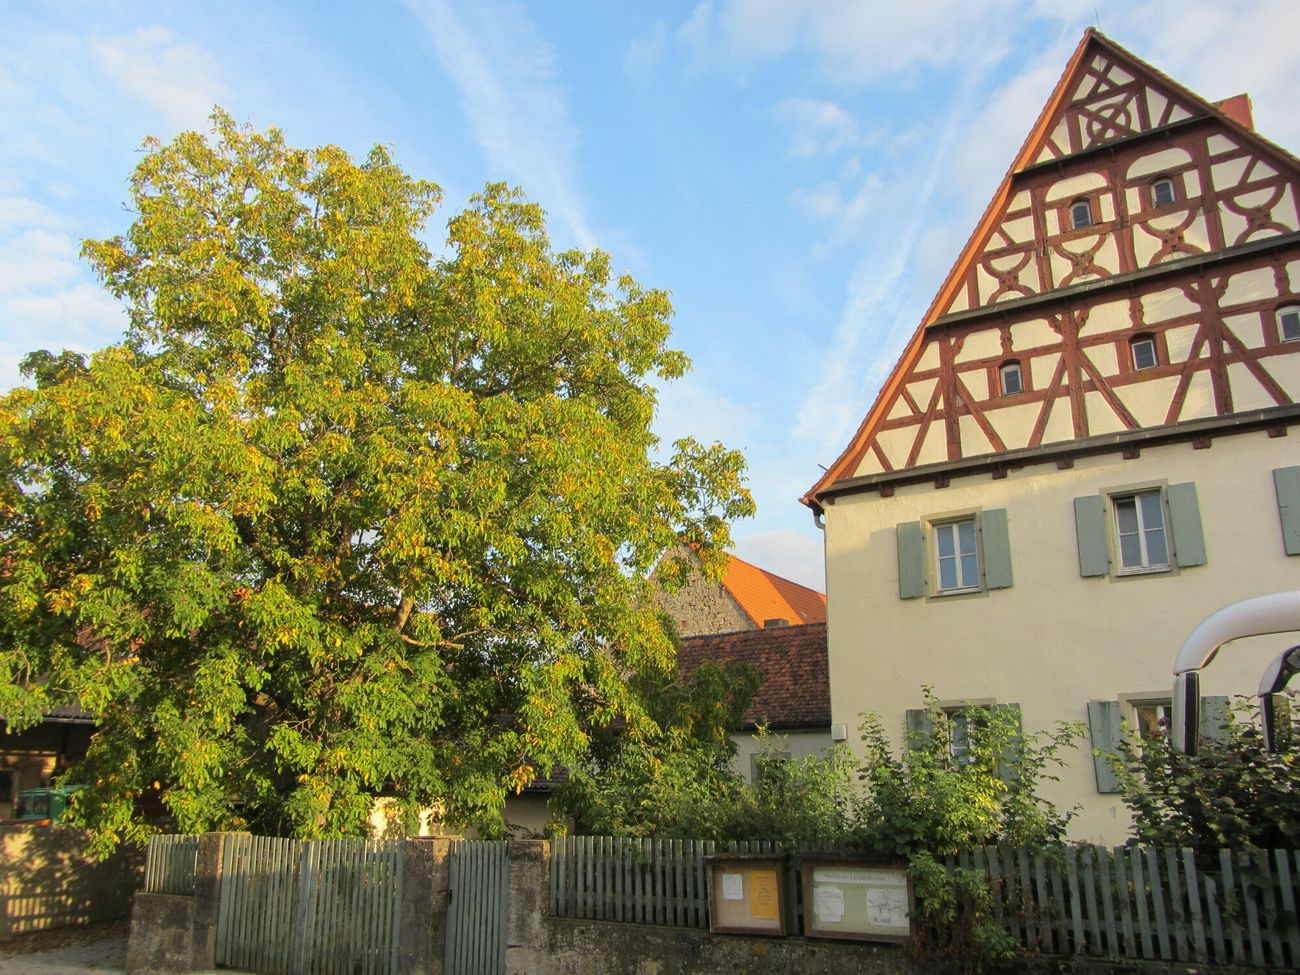 Leuzenbronn Rothenburg O. T.